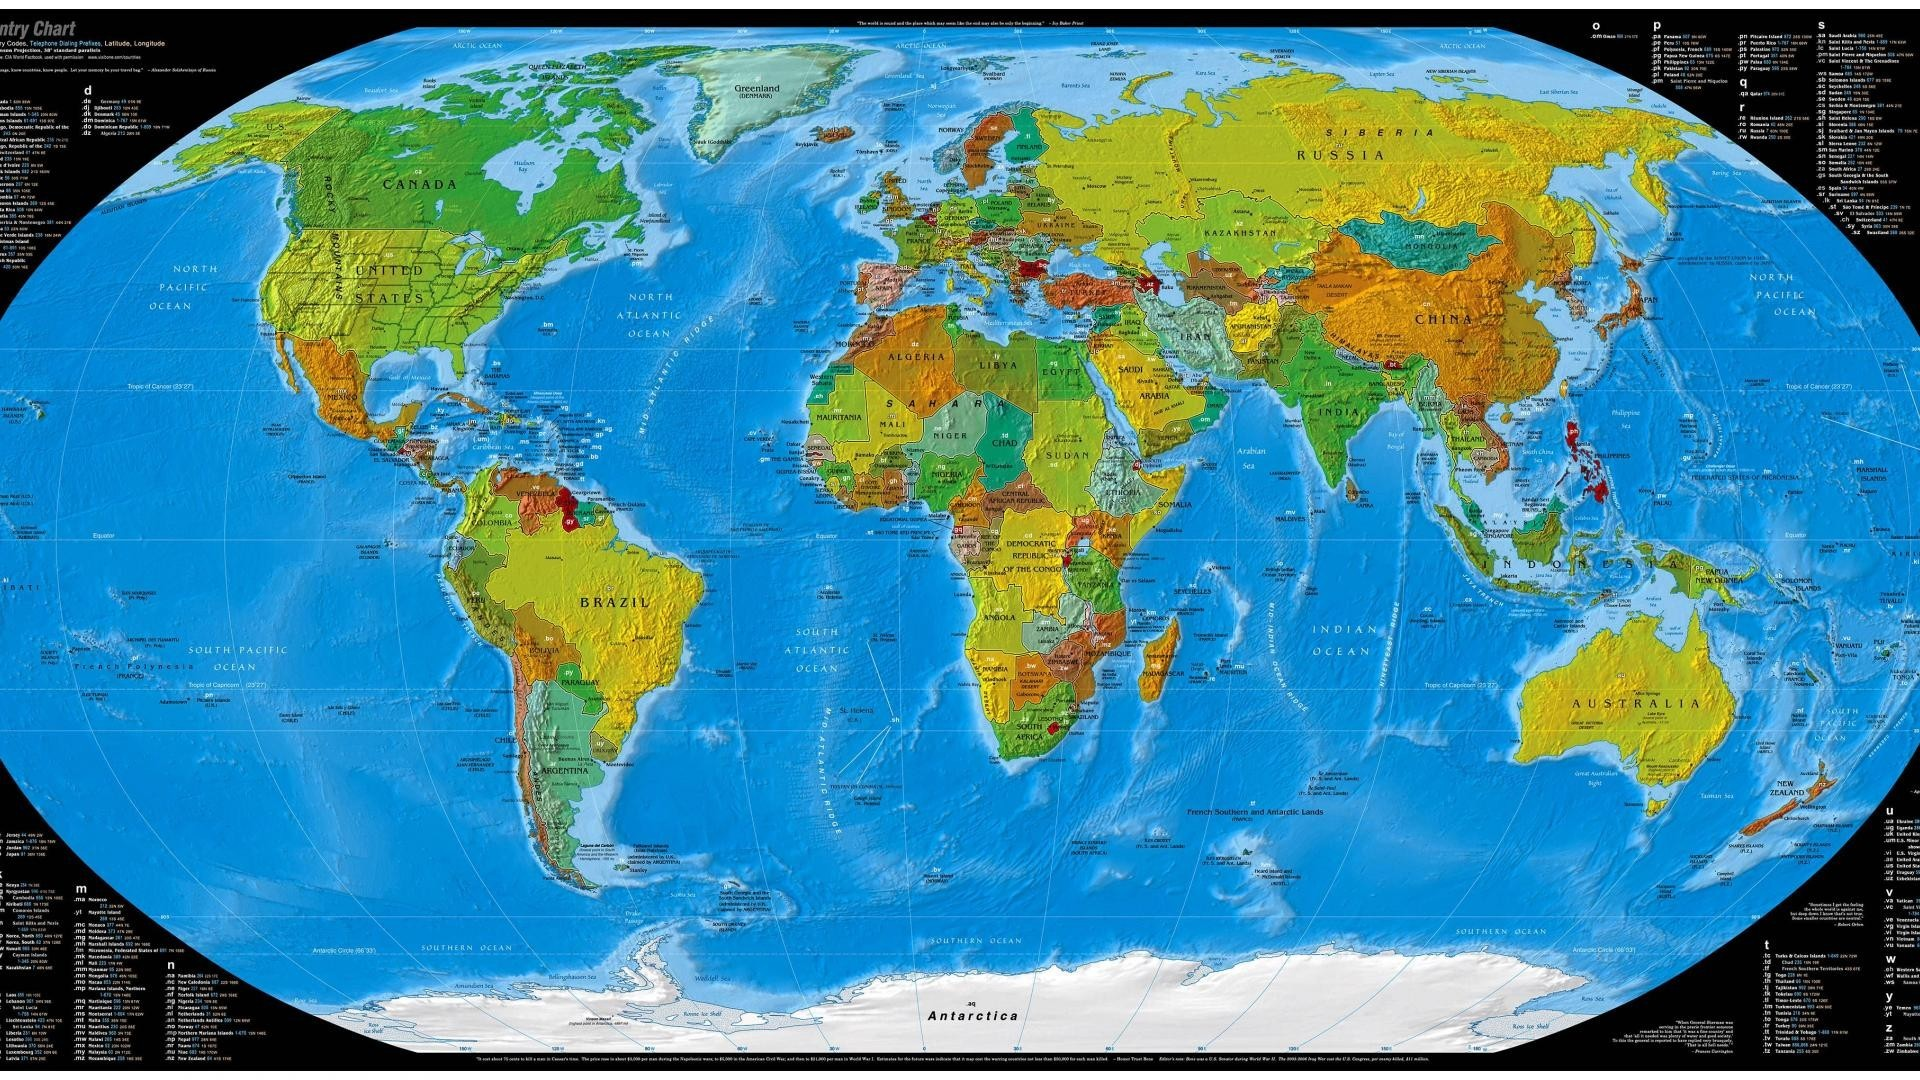 World map wallpapers 66 background pictures 1280x1920 world map wallpaper adelaide fresh map wallpapers ozon4life inspirationa world map wallpaper adelaide new world map download gumiabroncs Image collections